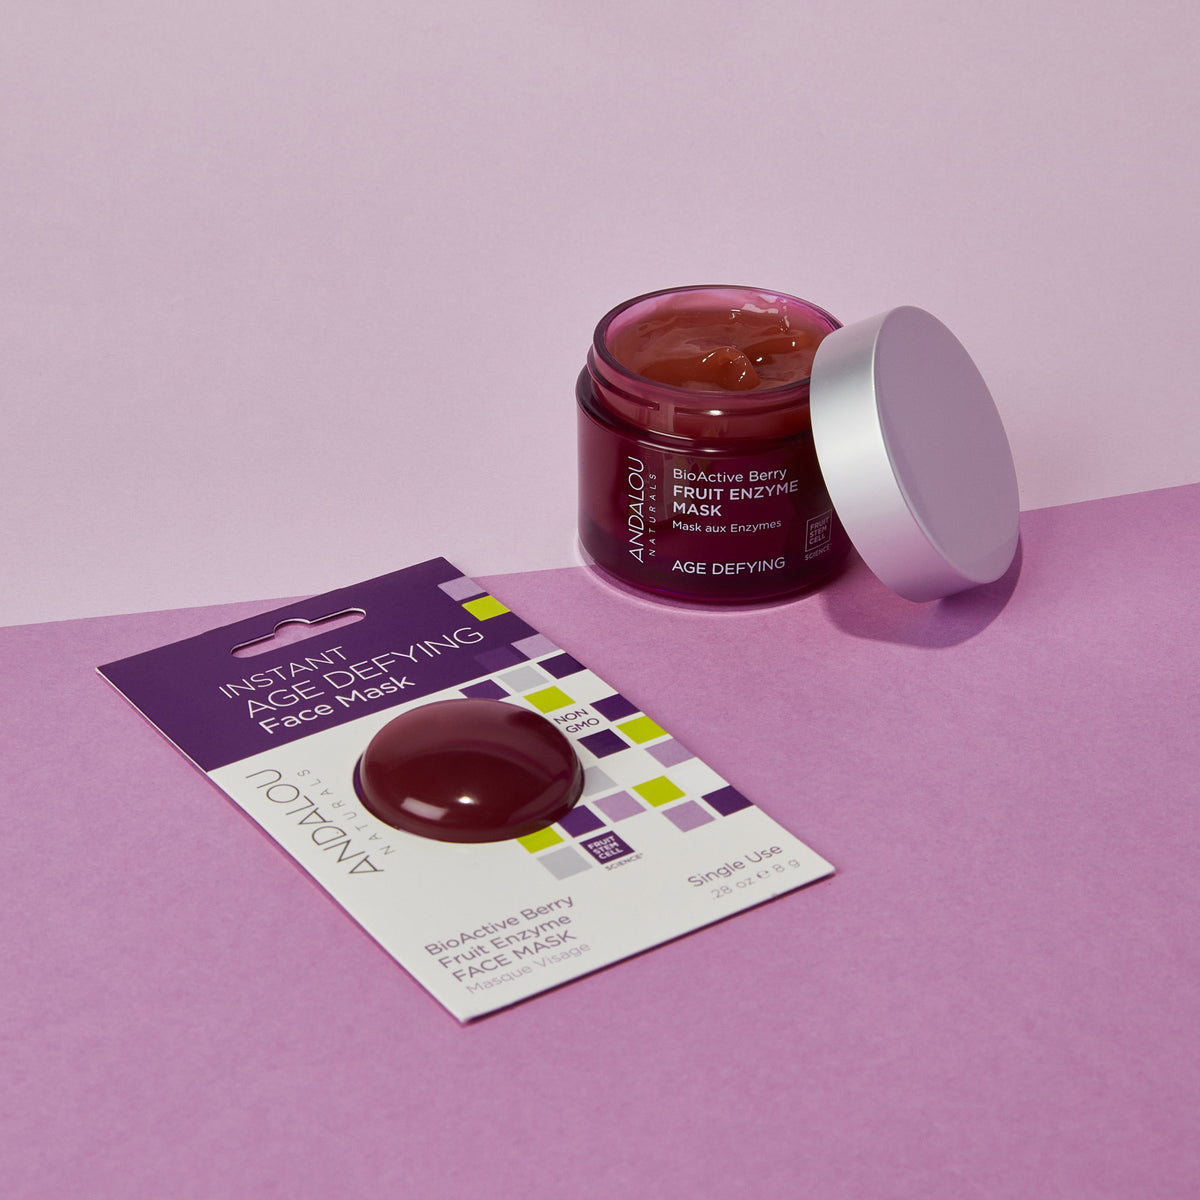 Age Defying BioActive Berry Fruit Enzyme Mask - Andalou Naturals US